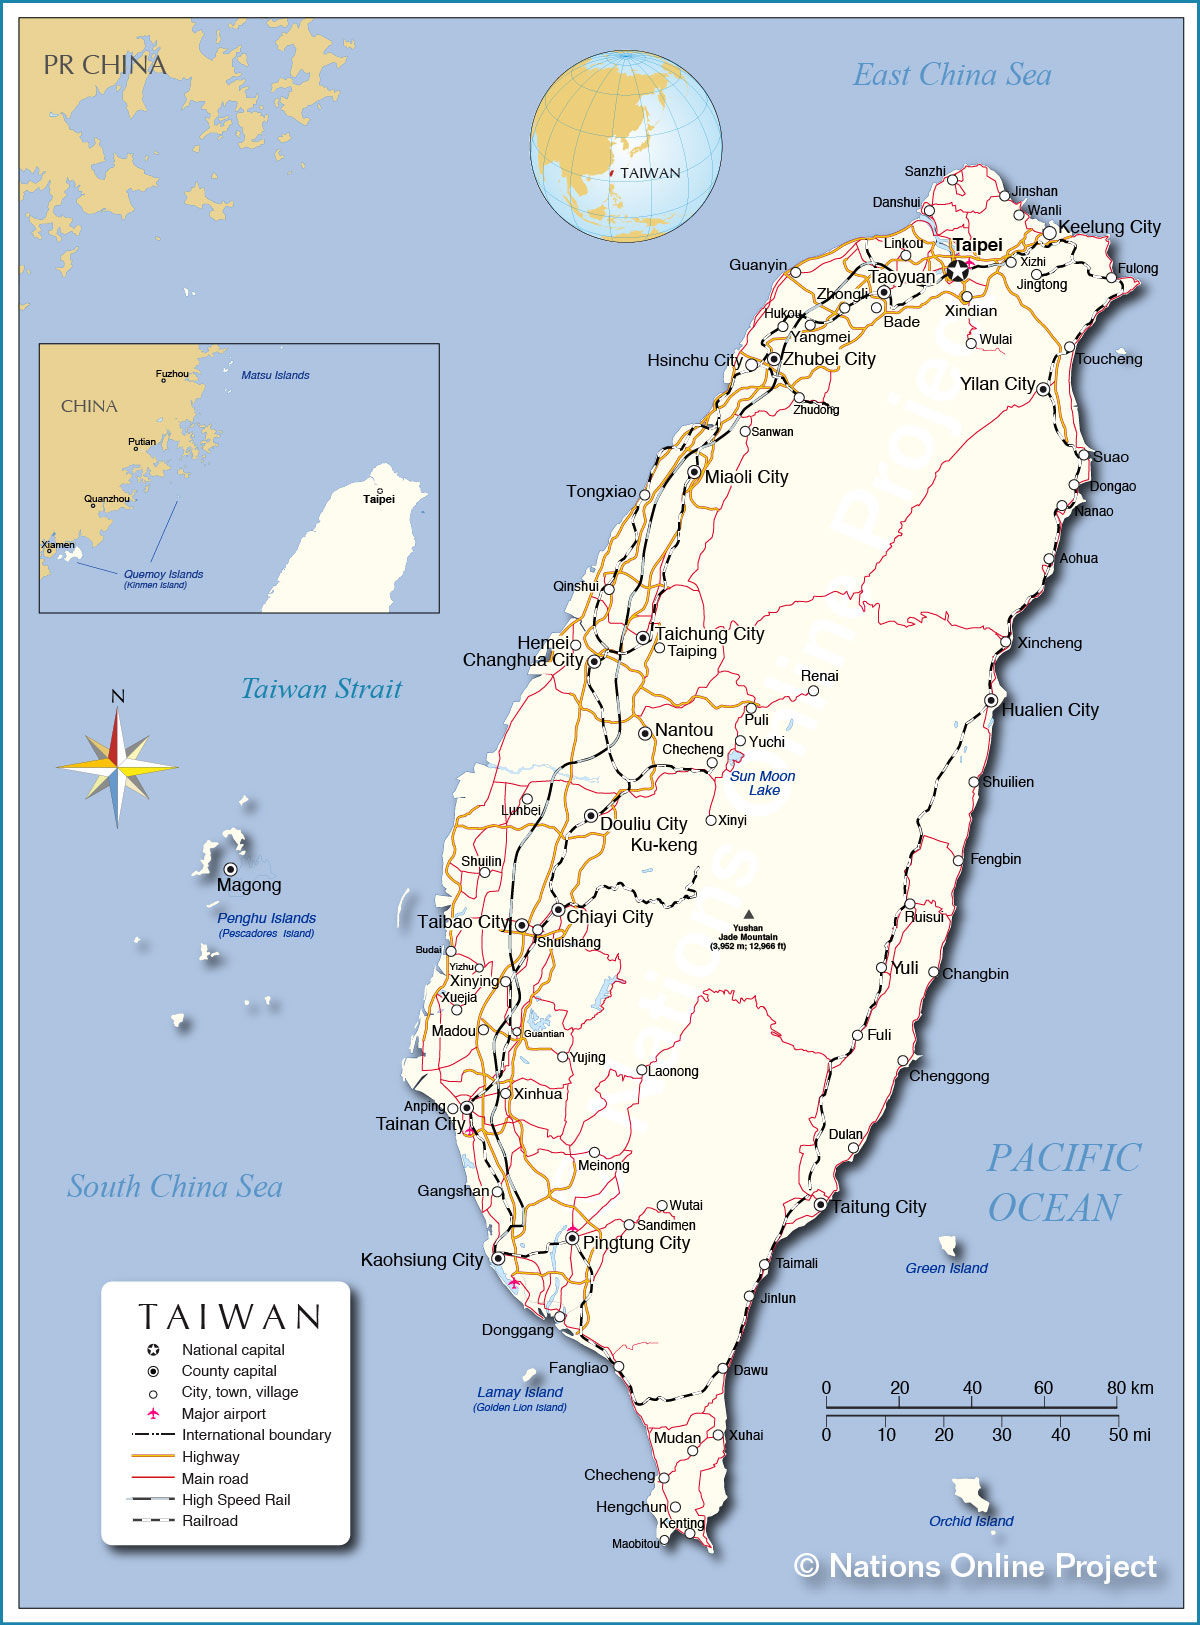 Taiwan Map From Nationsonline 7